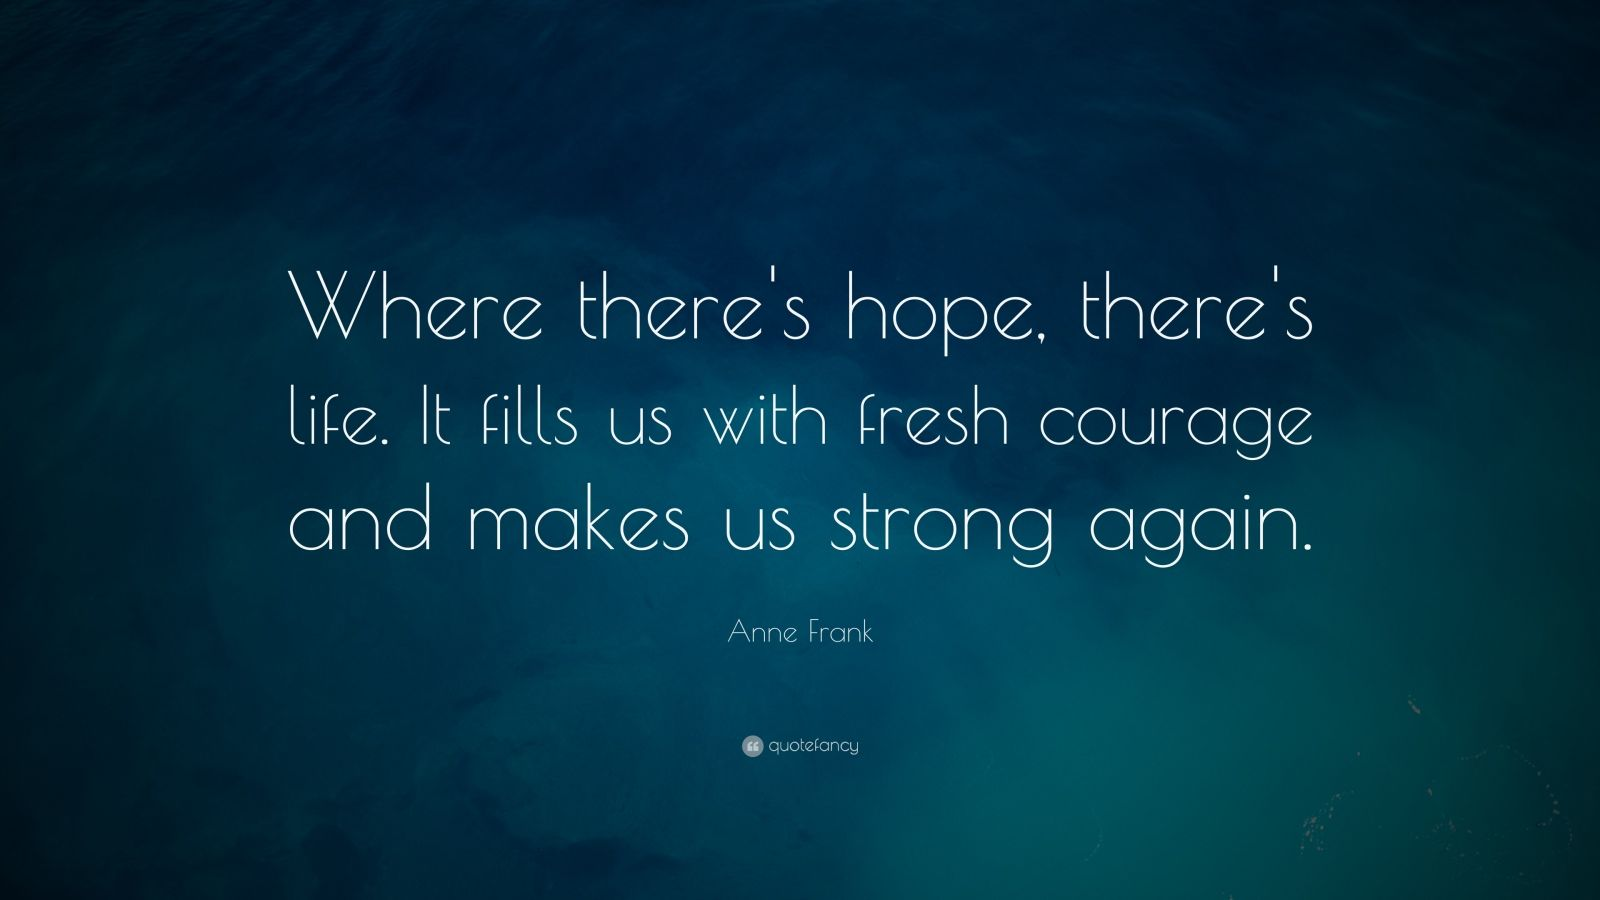 """Anne Frank Quote: """"Where there's hope, there's life. It fills us with fresh courage and makes us strong again."""""""